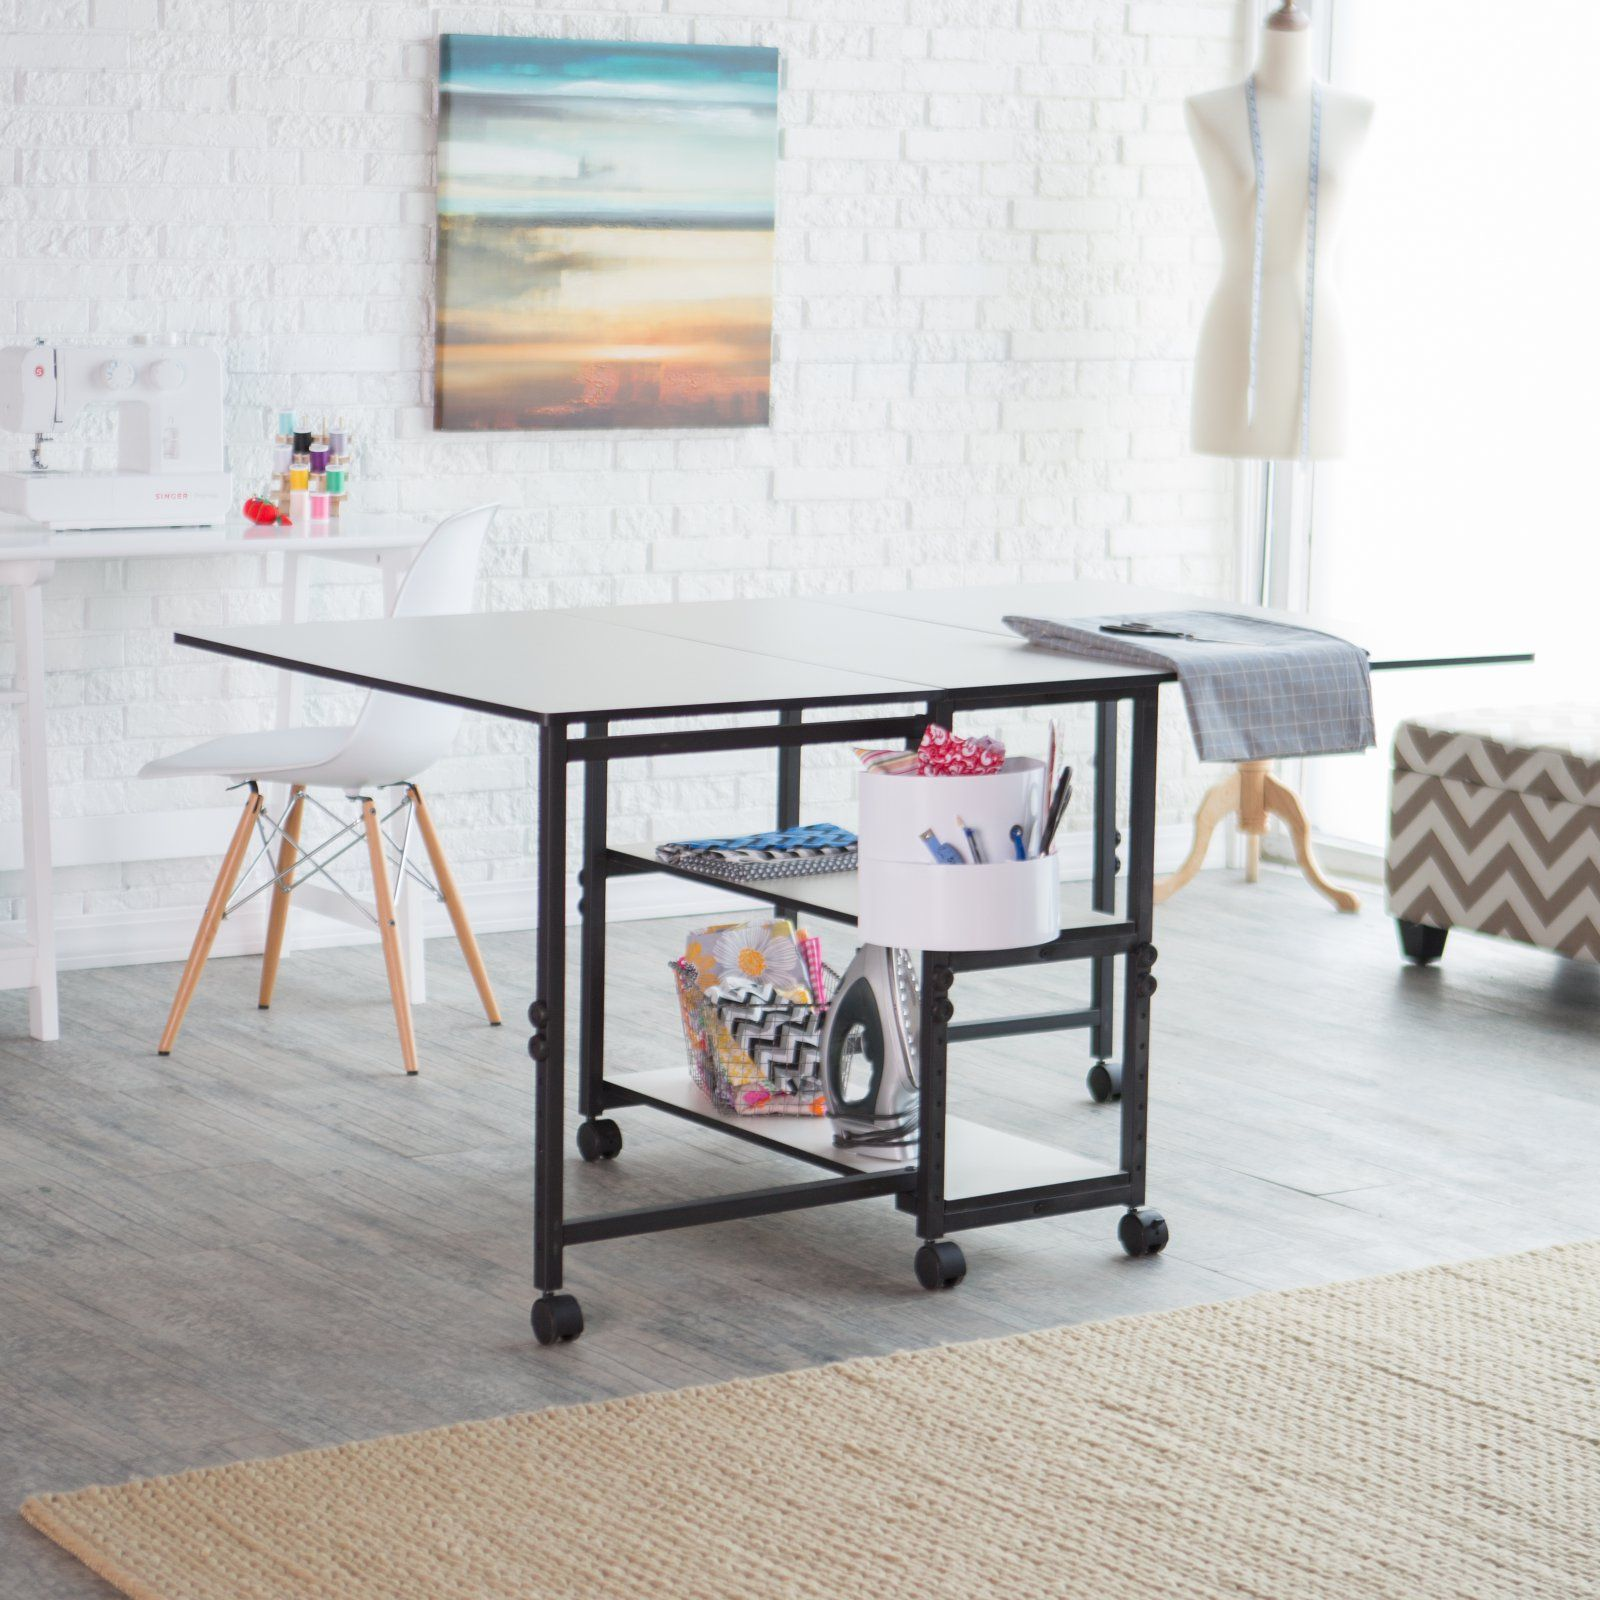 Arts Crafts Sewing In 2020 Hobby Table Foldable Table Home